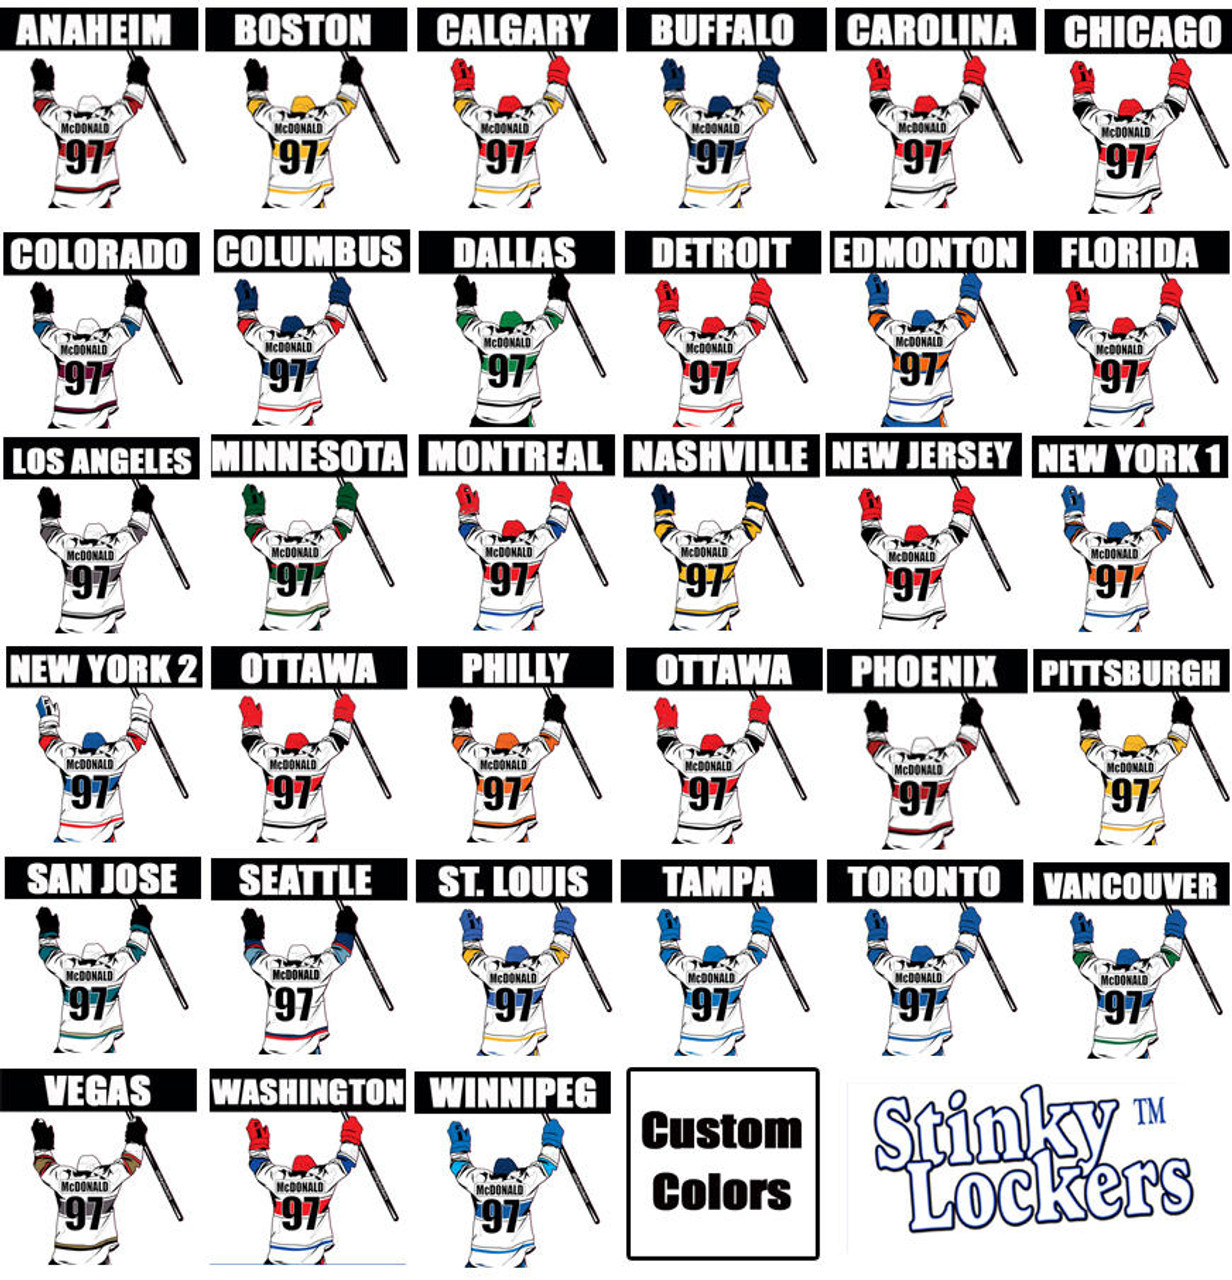 Personalized Hockey Water Bottle Stickers -3 Pack